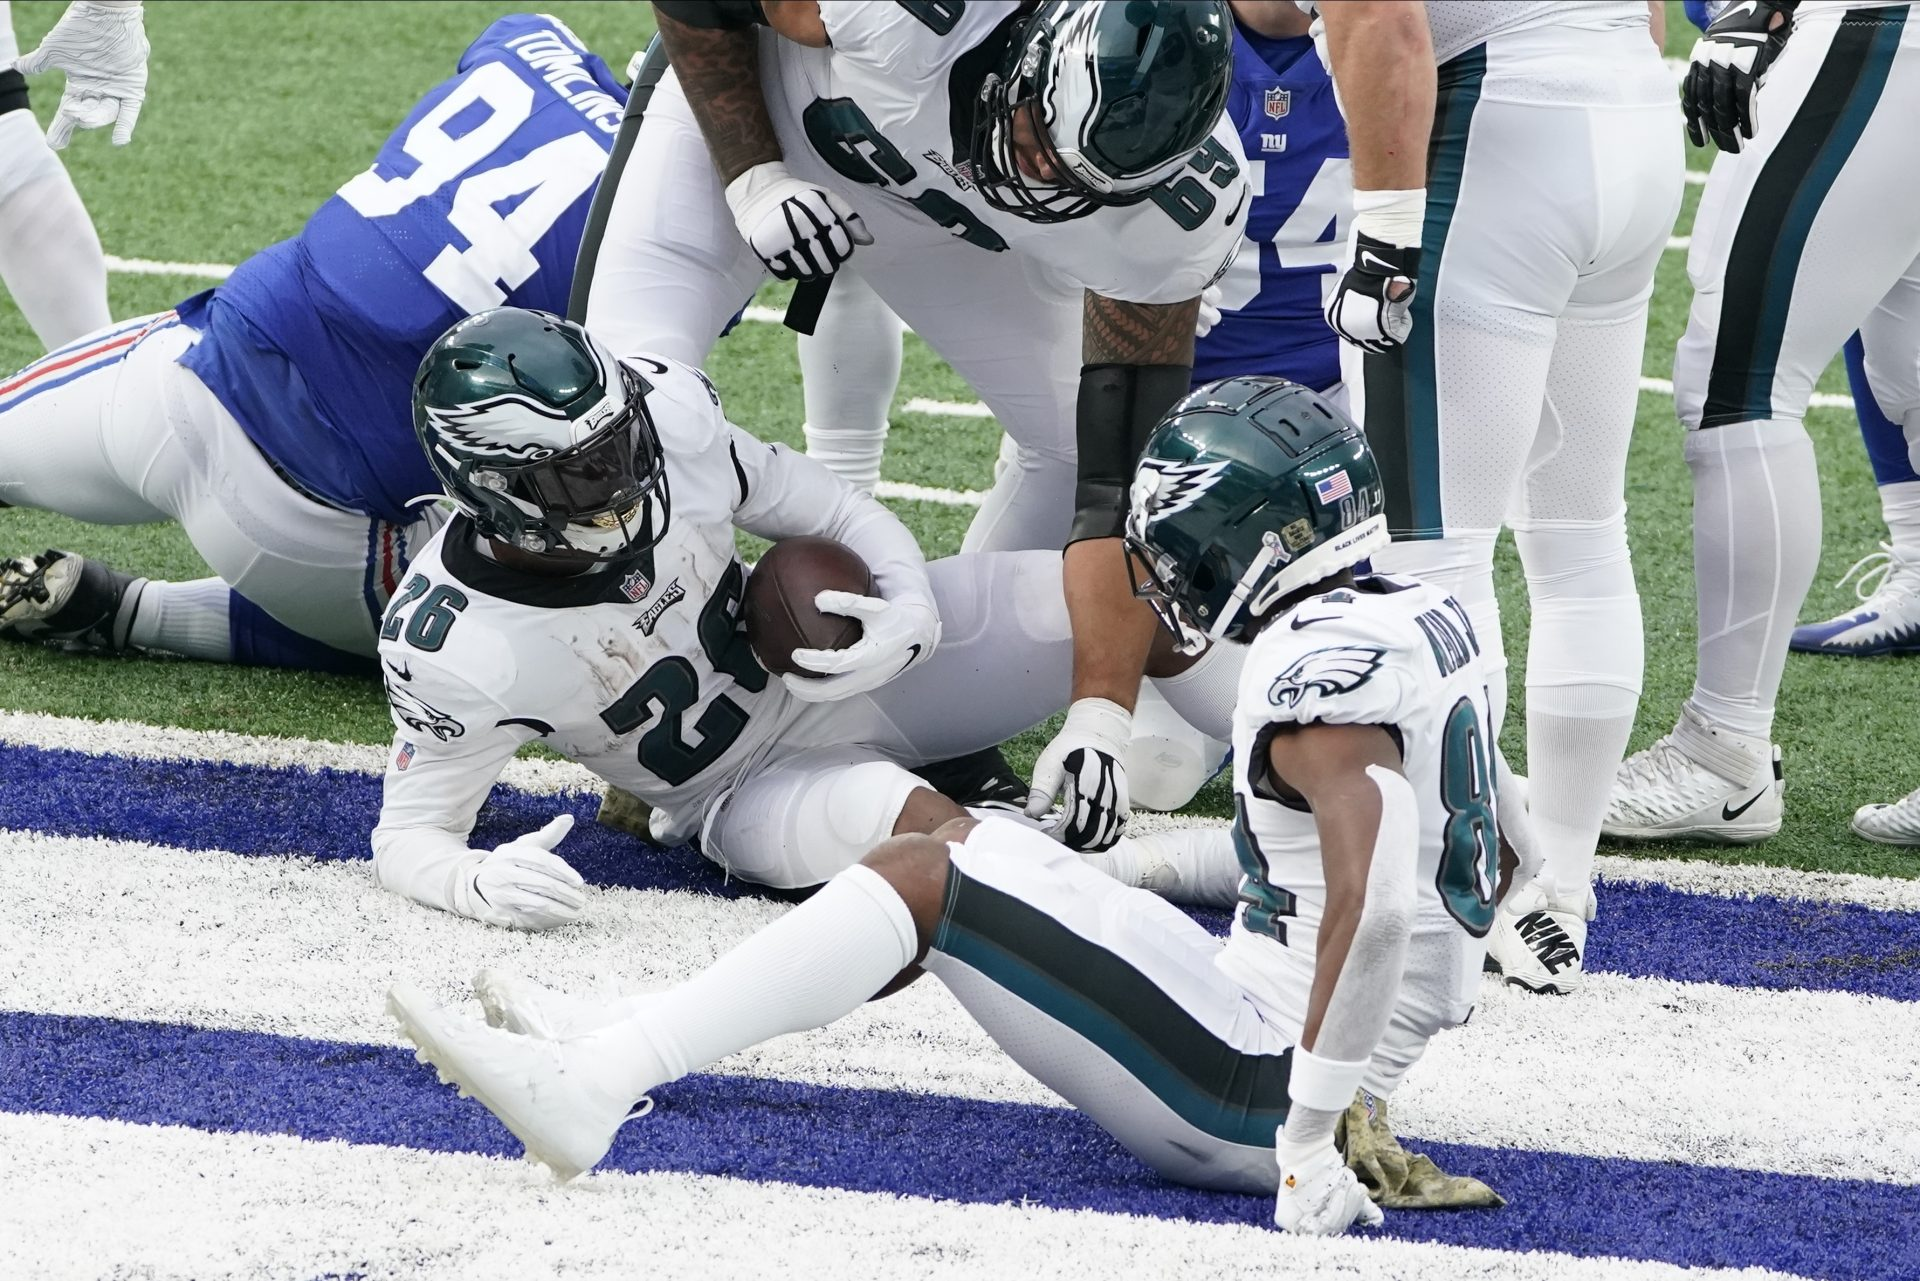 Philadelphia Eagles' Miles Sanders (26) scores a two-point conversion during the second half of an NFL football game against the New York Giants, Sunday, Nov. 15, 2020, in East Rutherford, N.J.